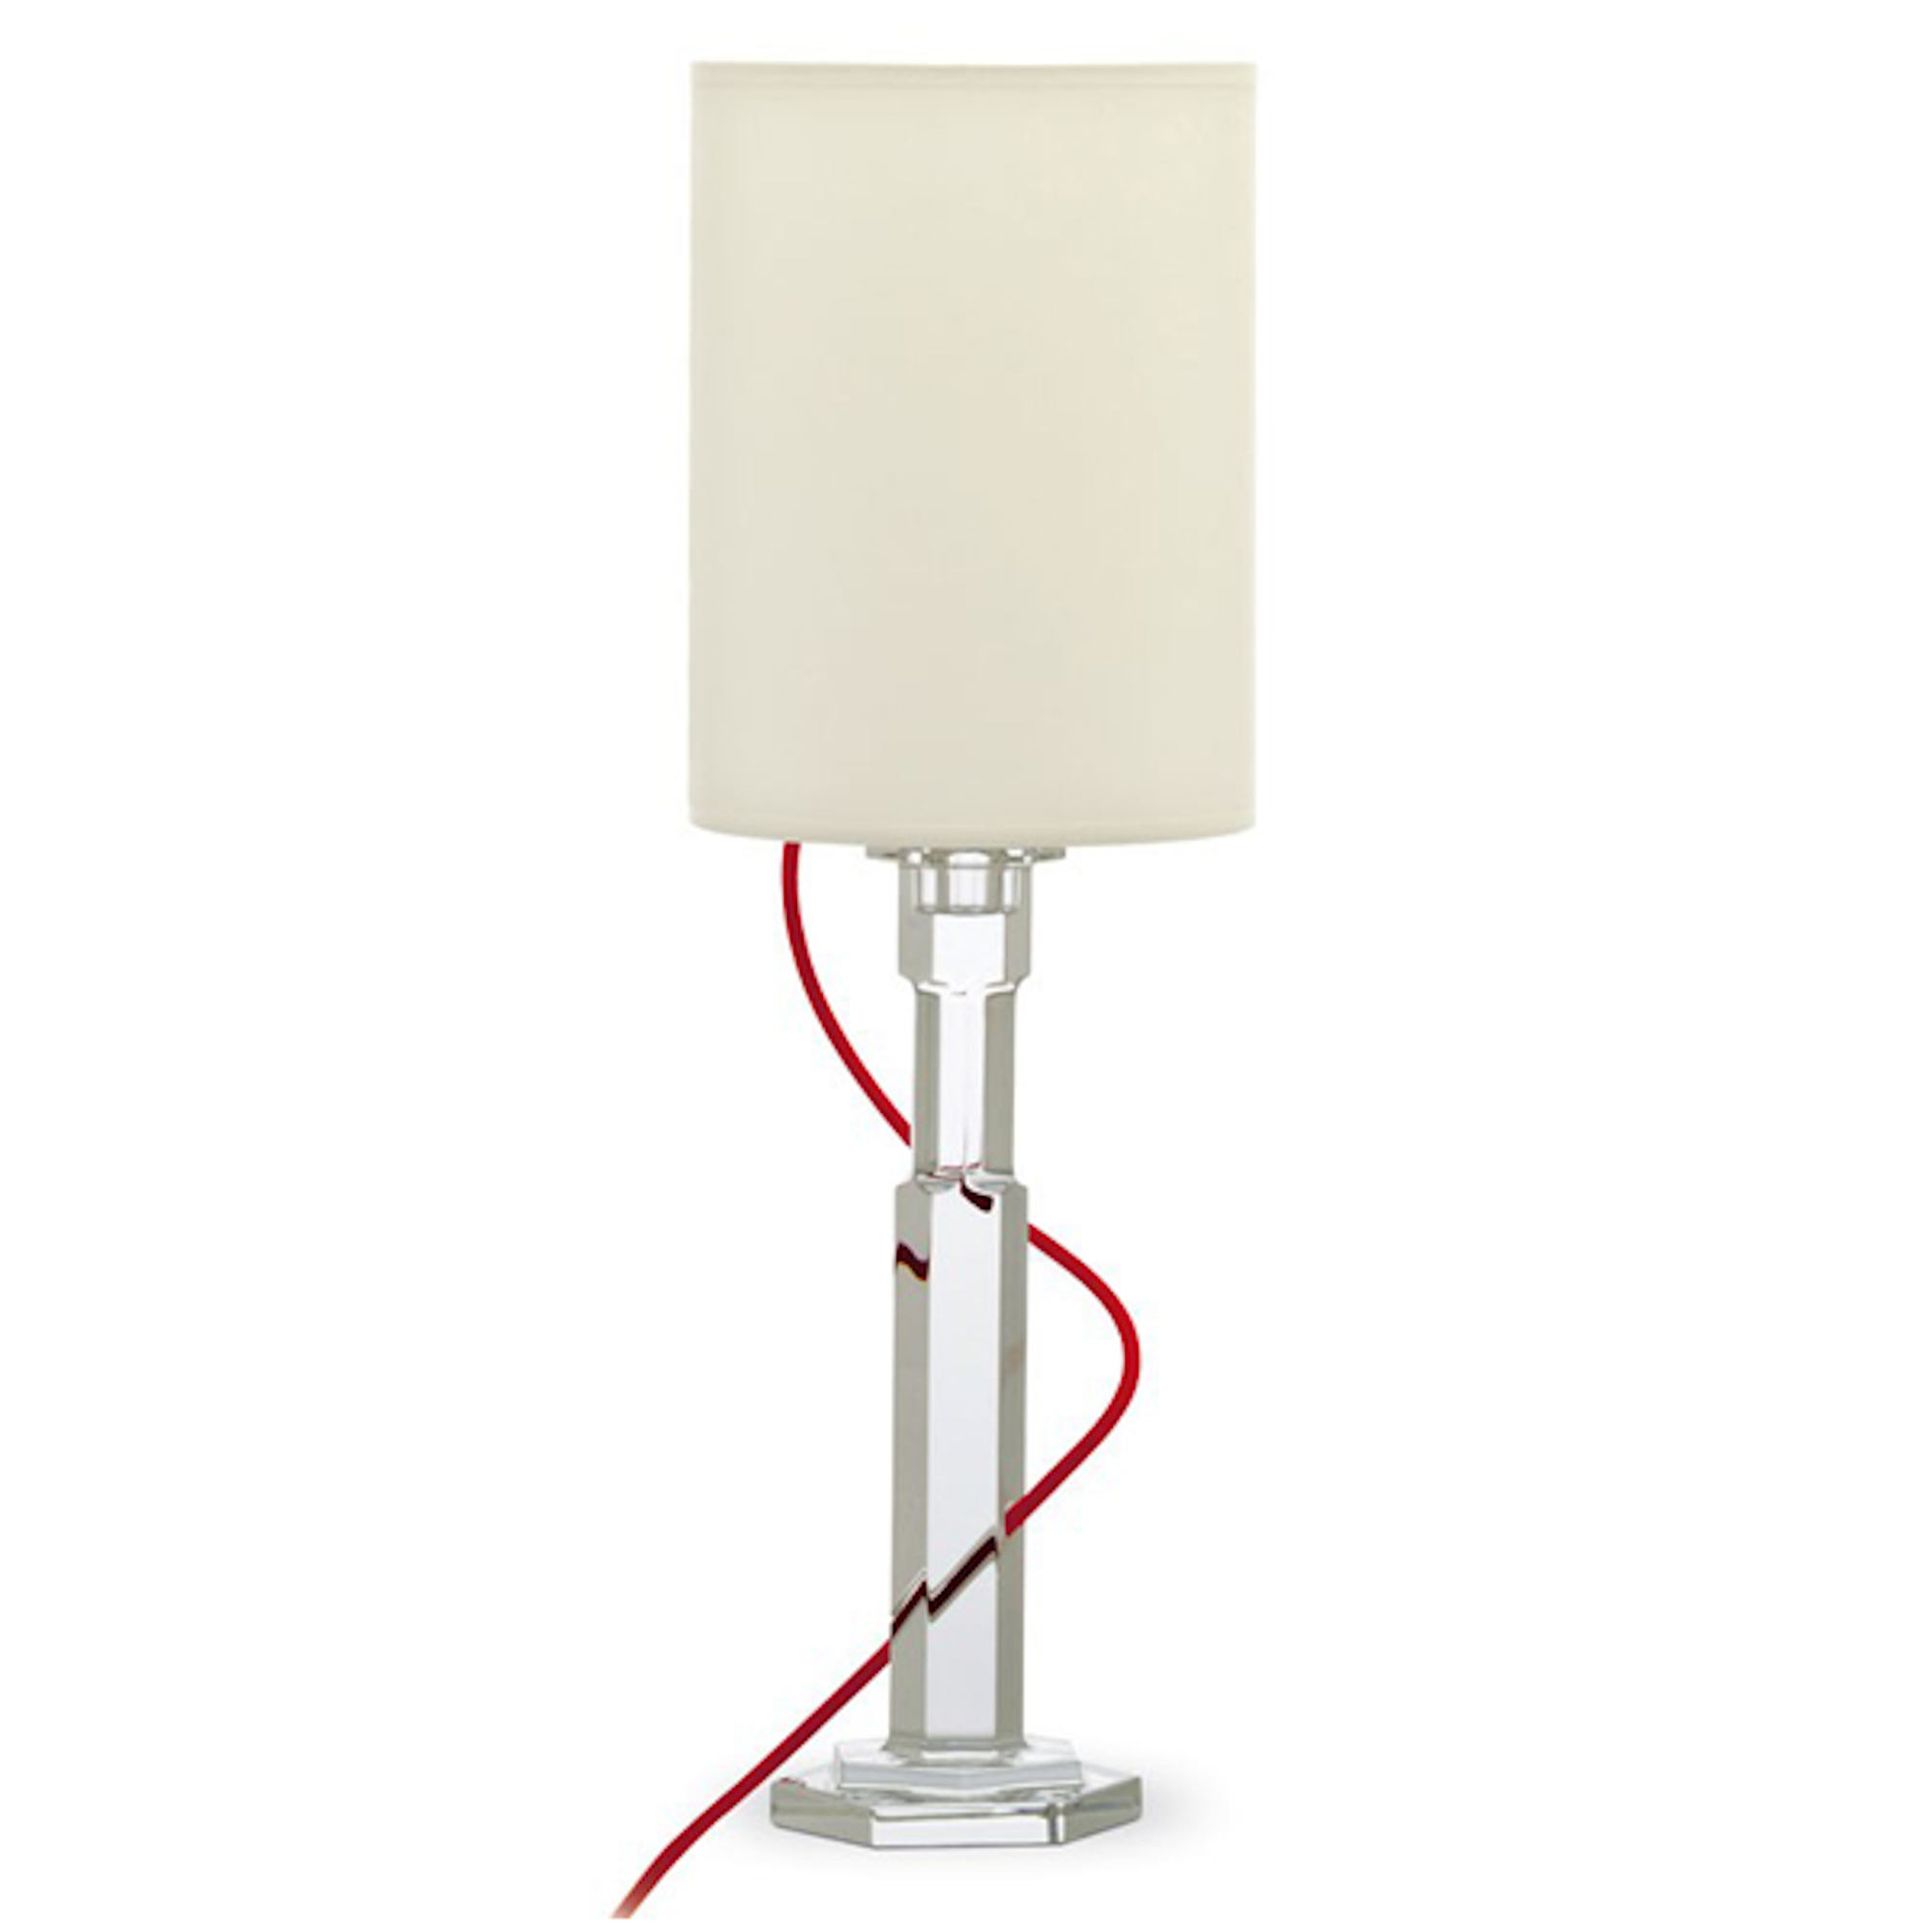 Abysse lamp Baccarat 2606400